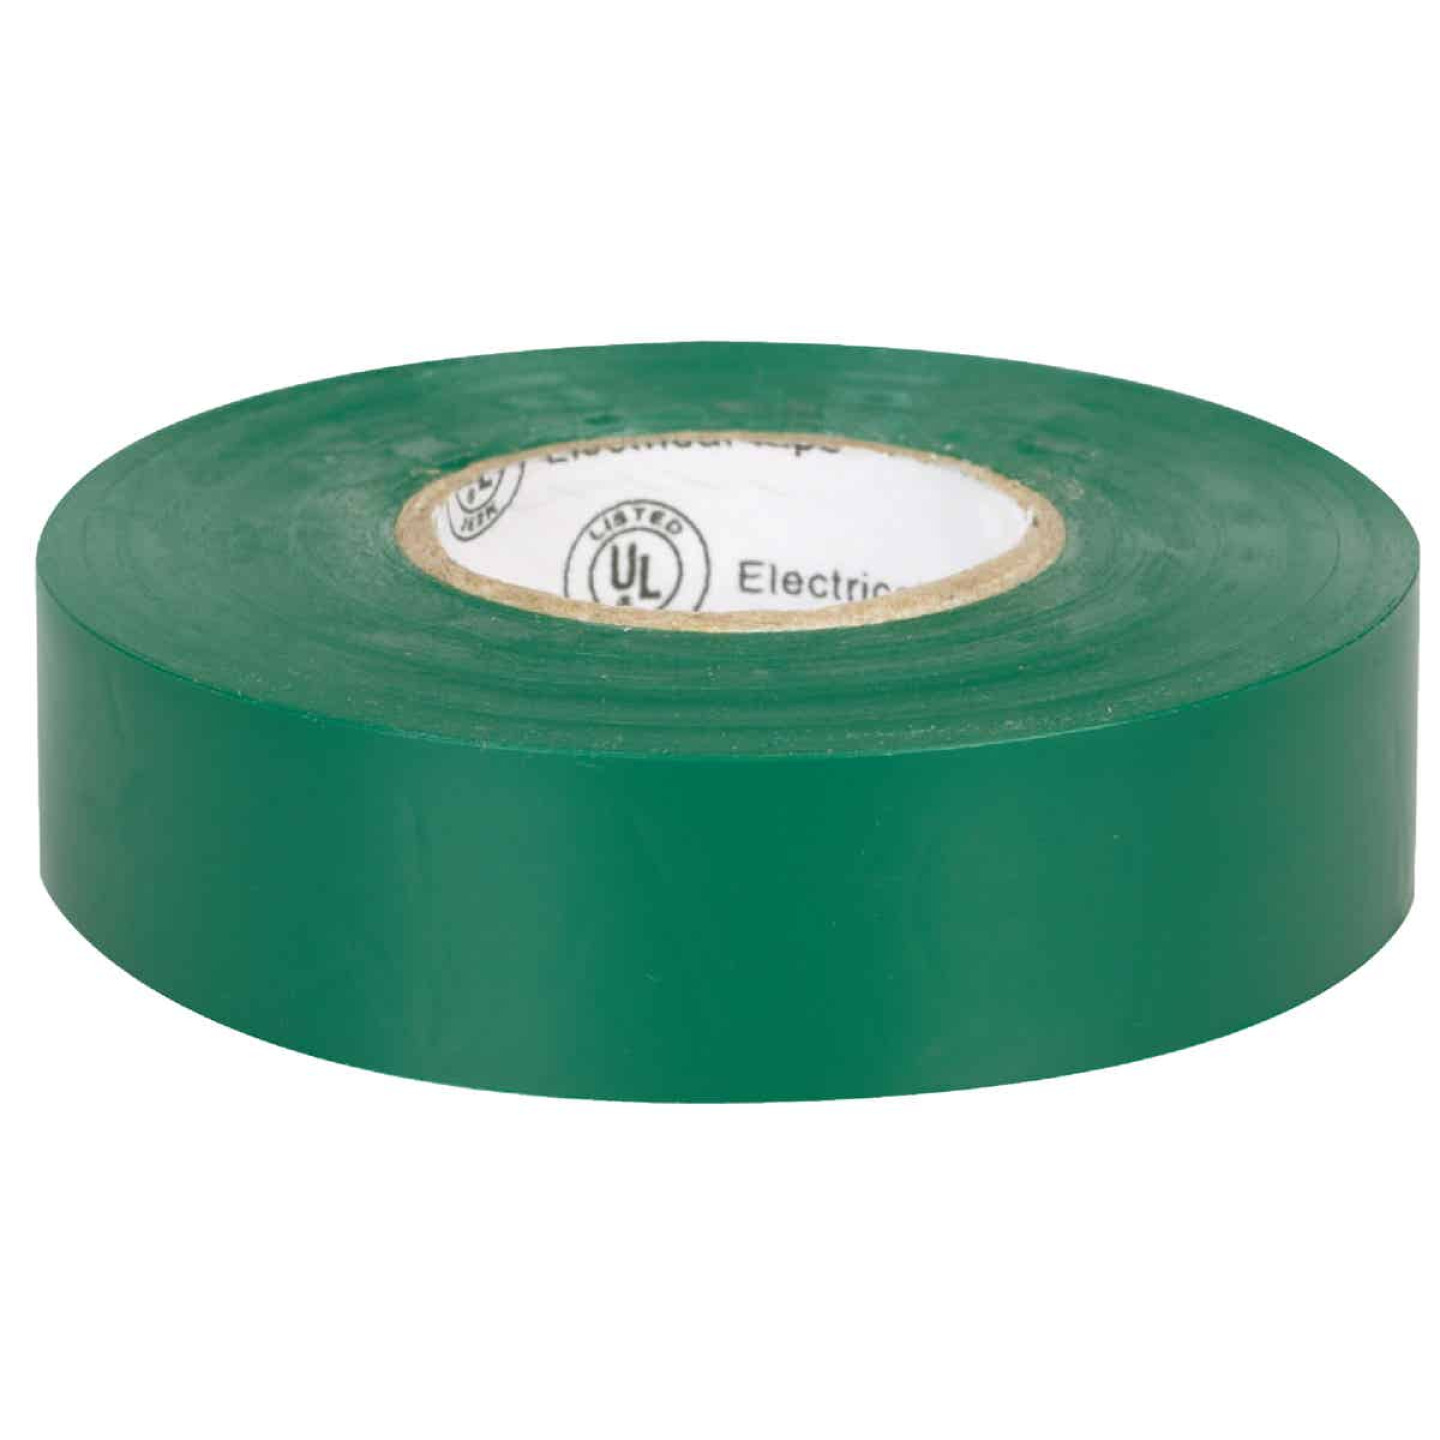 Do it General Purpose 3/4 In. x 60 Ft. GreenElectrical Tape Image 4